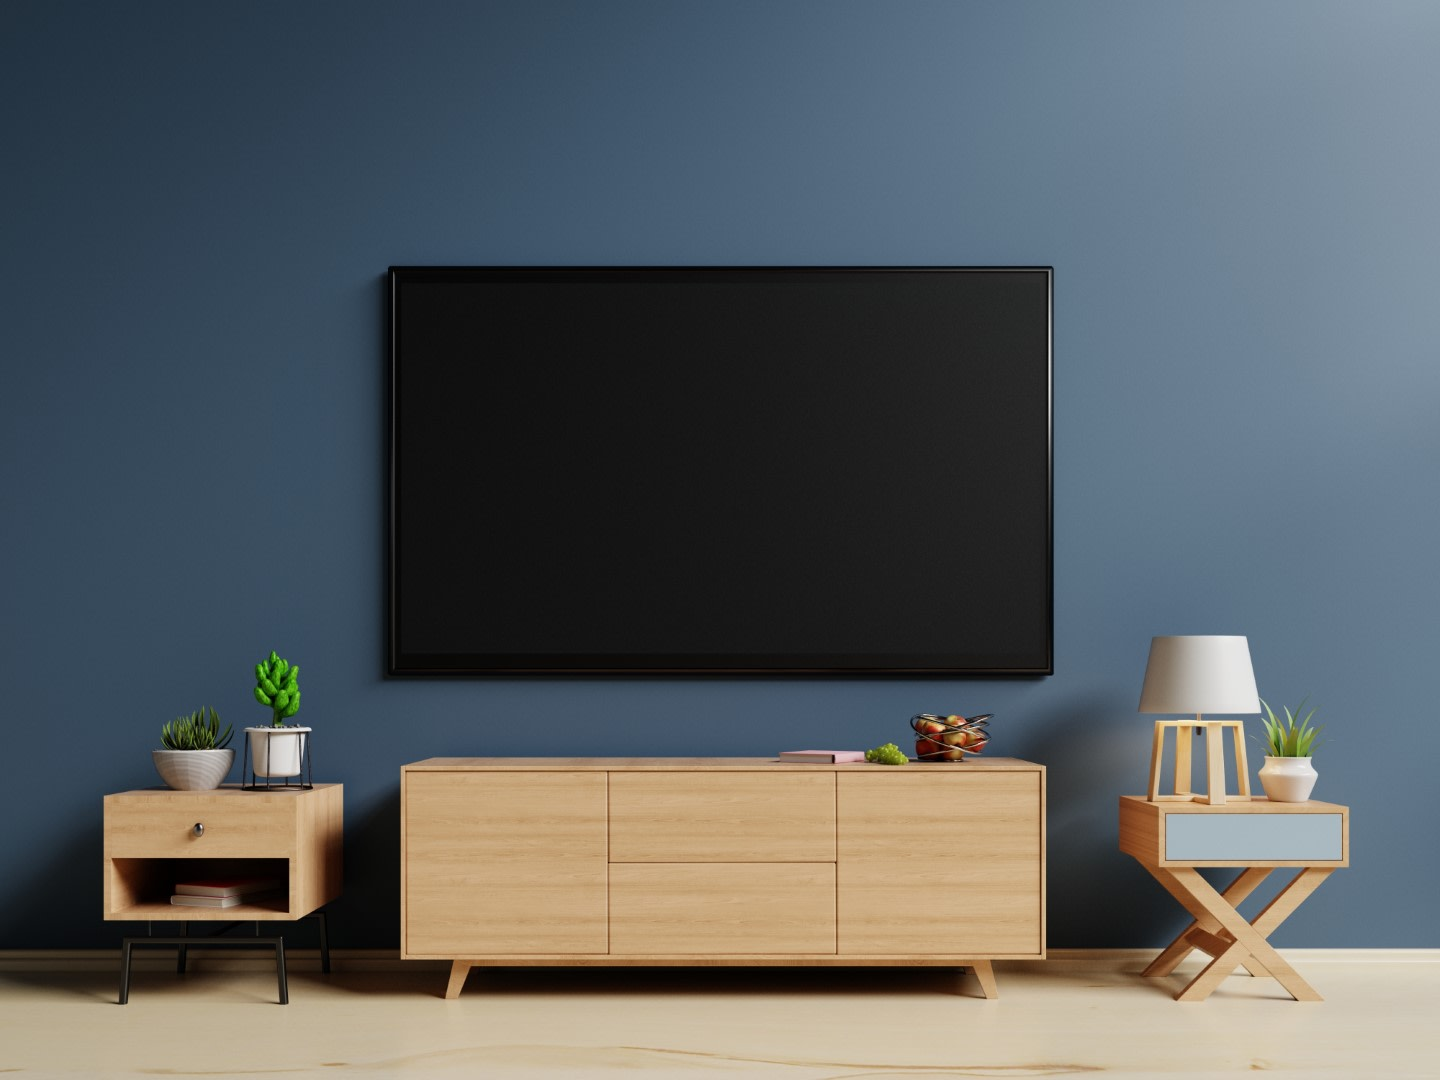 An image related to Best Big Screen WebOS Smart TVs